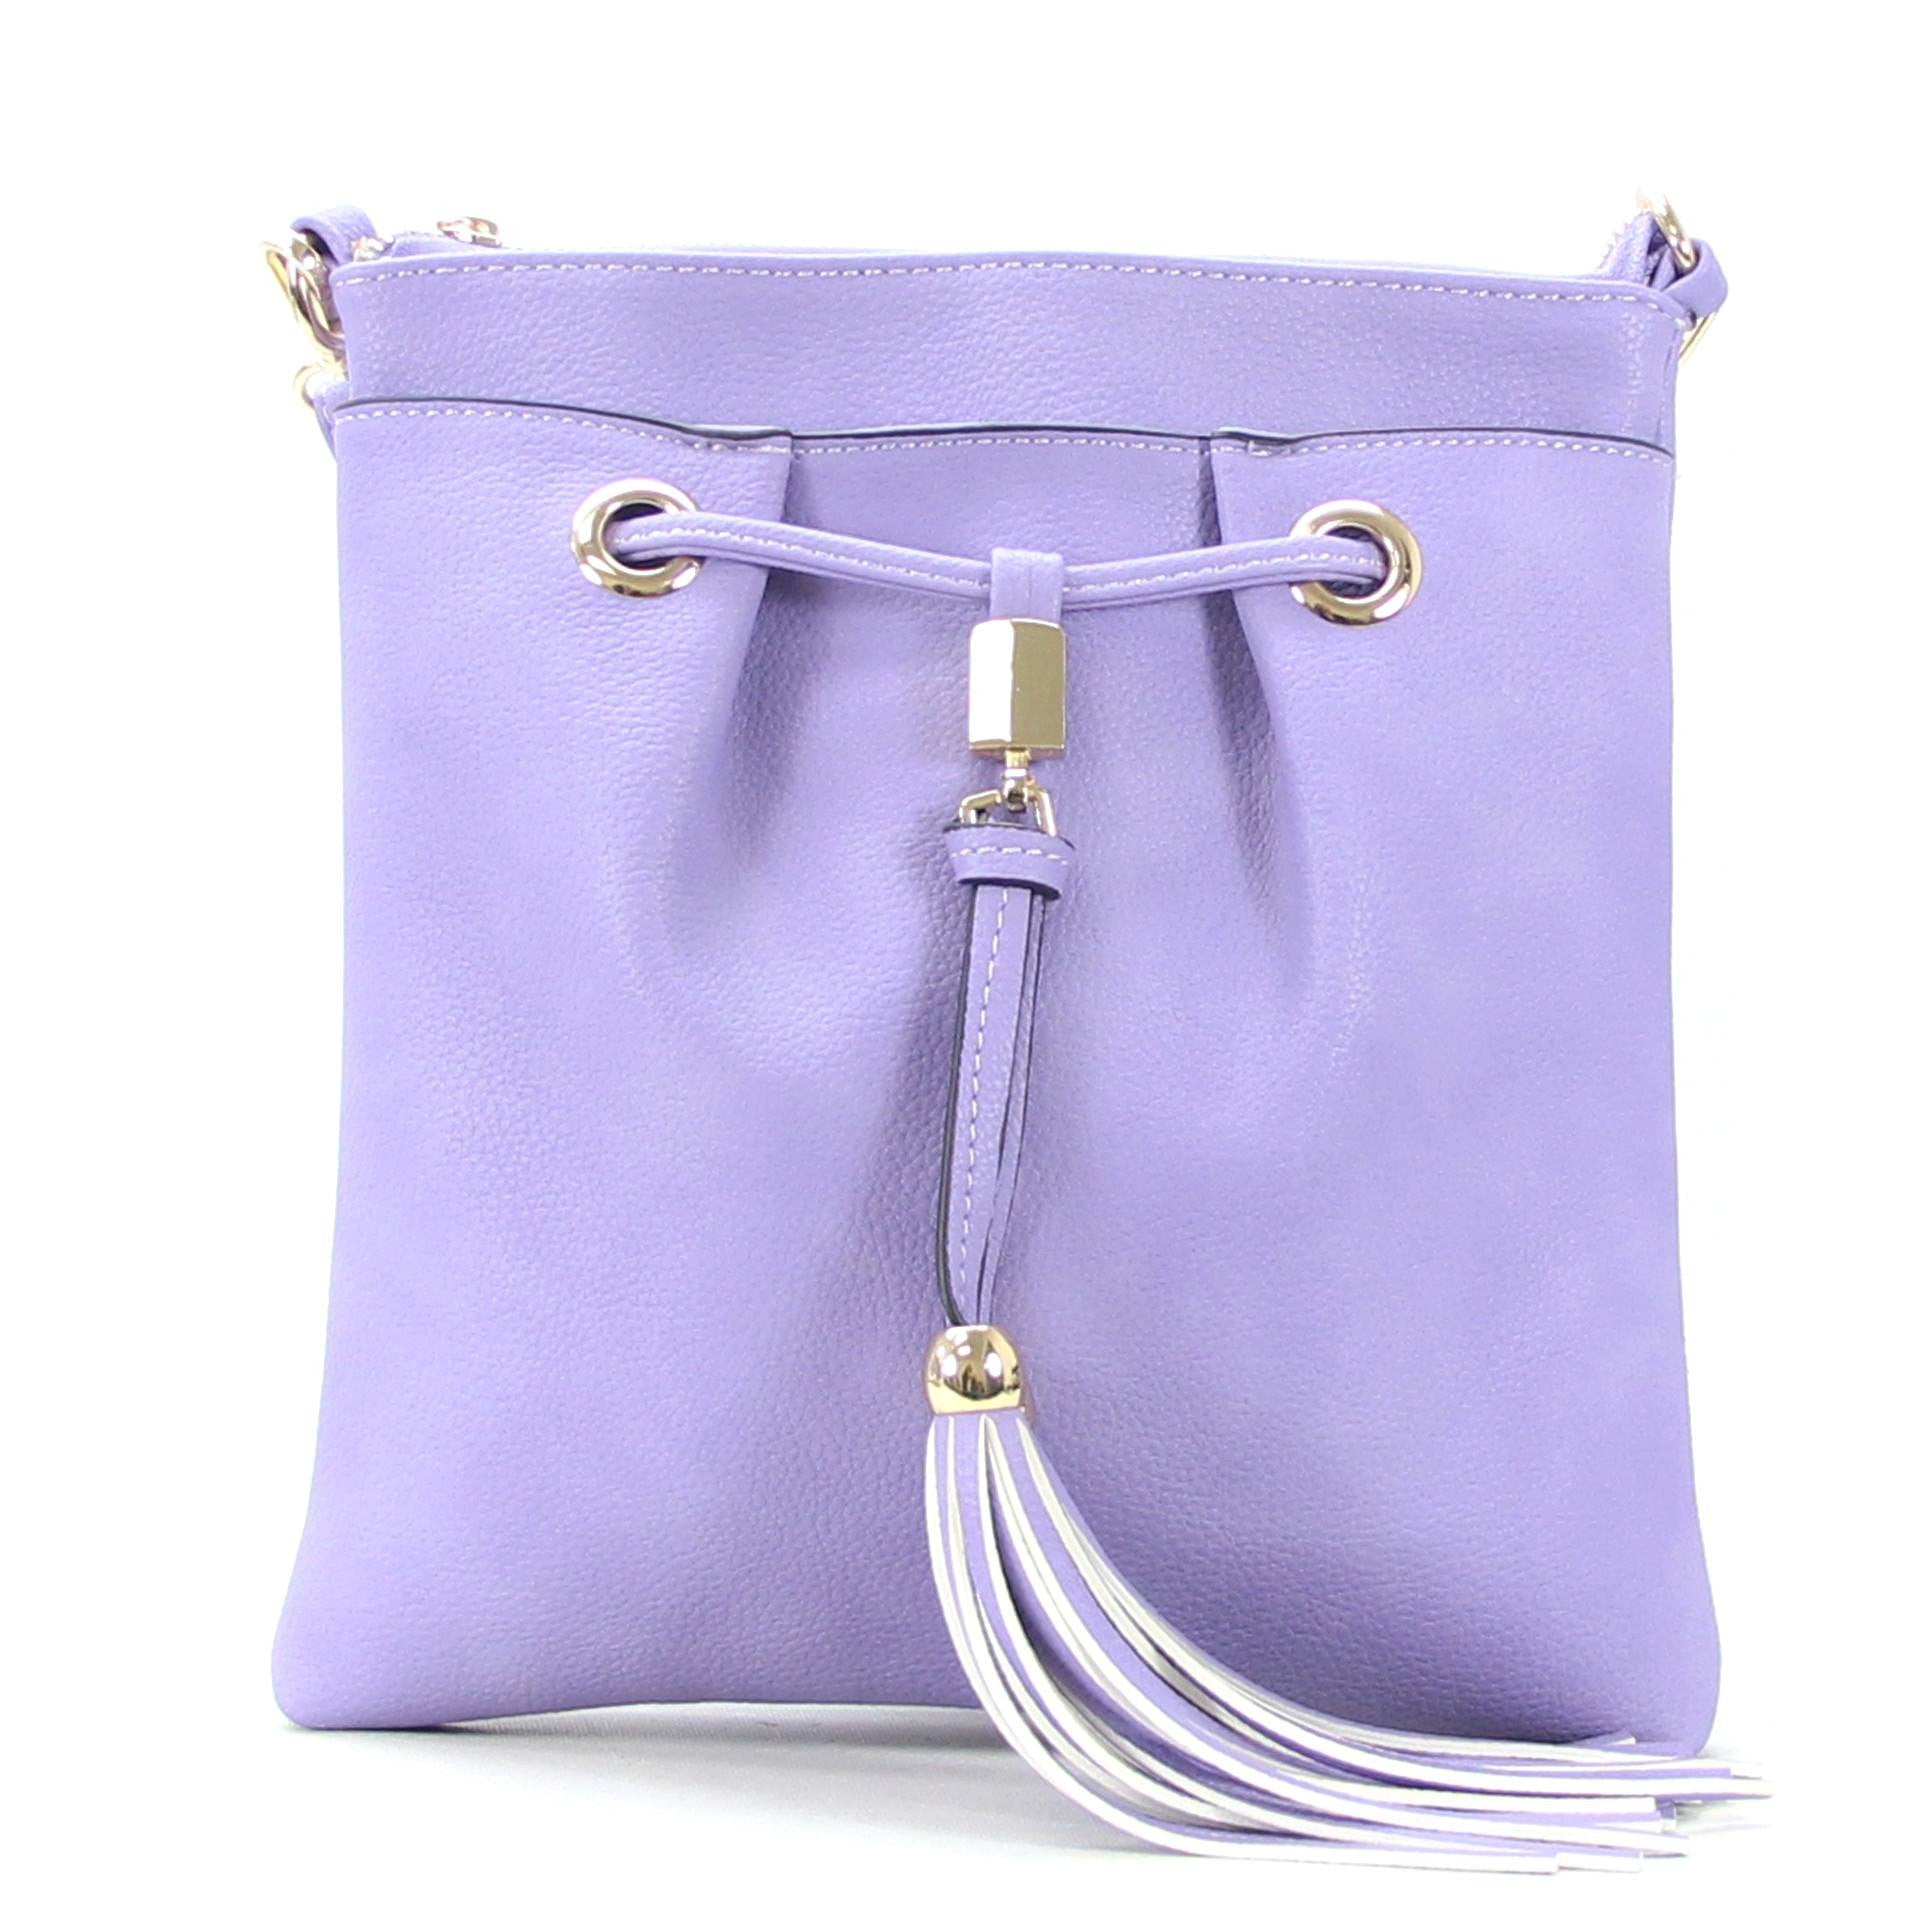 All Styles,Totes,New Arrivals,Shoulder Bags,Tote,Shoulder Bag,Bag - Robert Matthew Kaylee Crossbody Shoulder Bag In Lavender